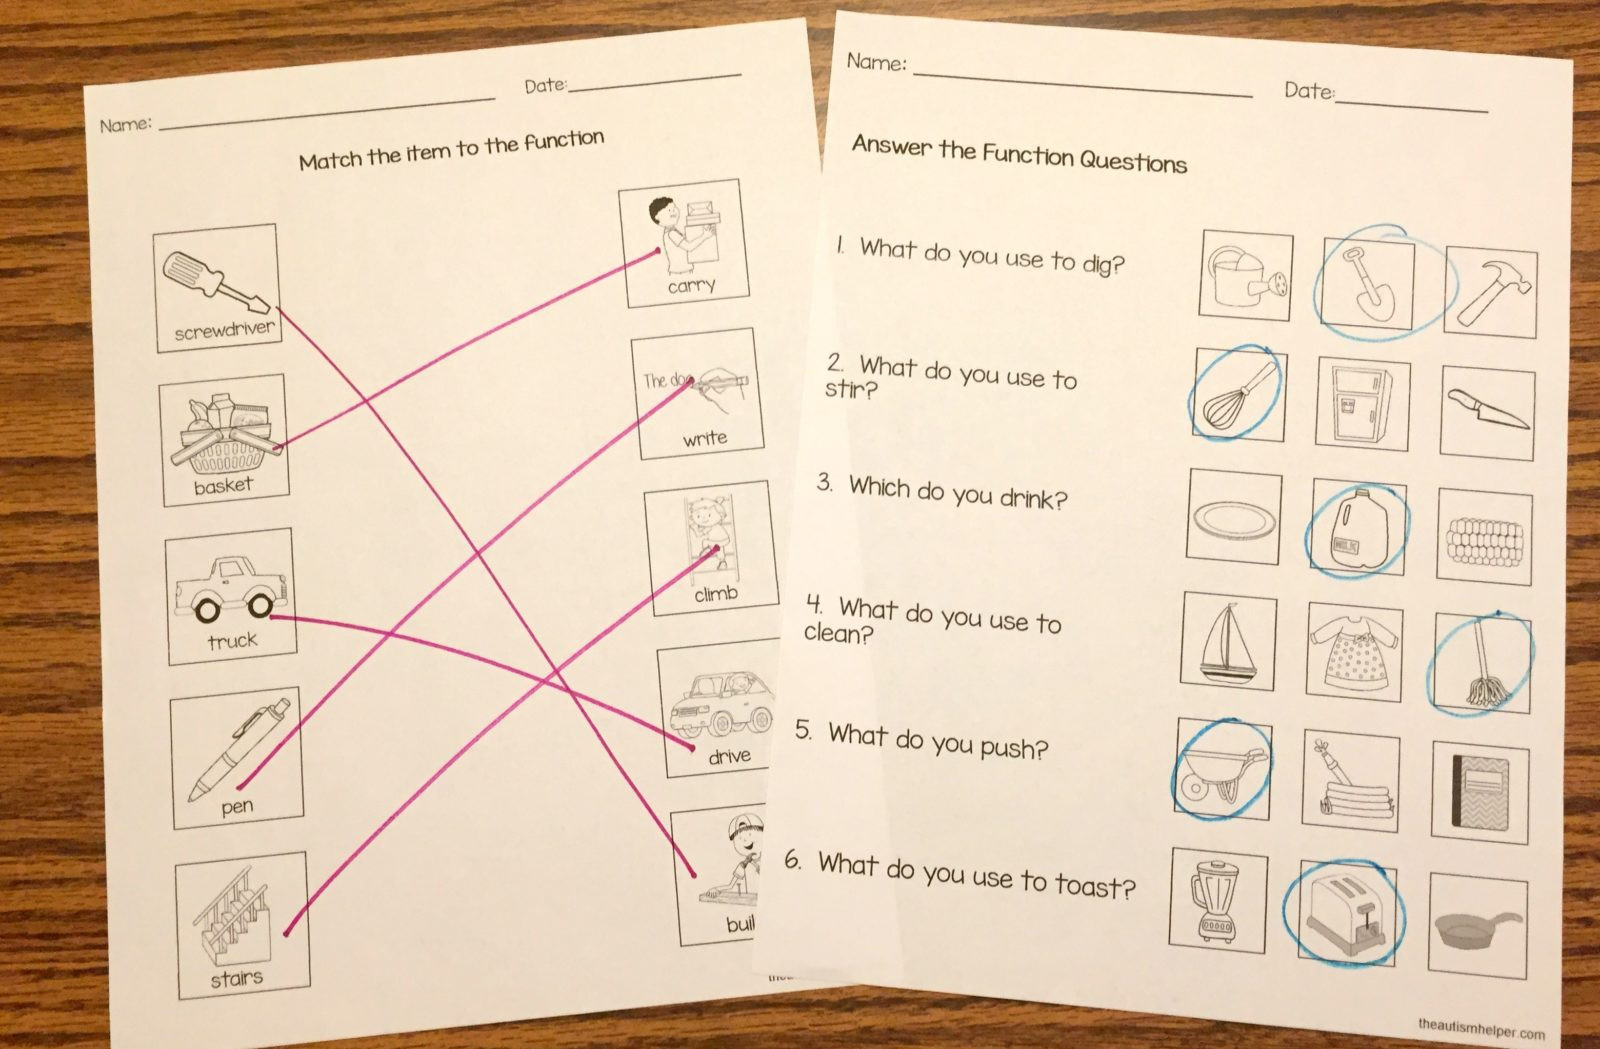 30 Parent Function Worksheet Answers